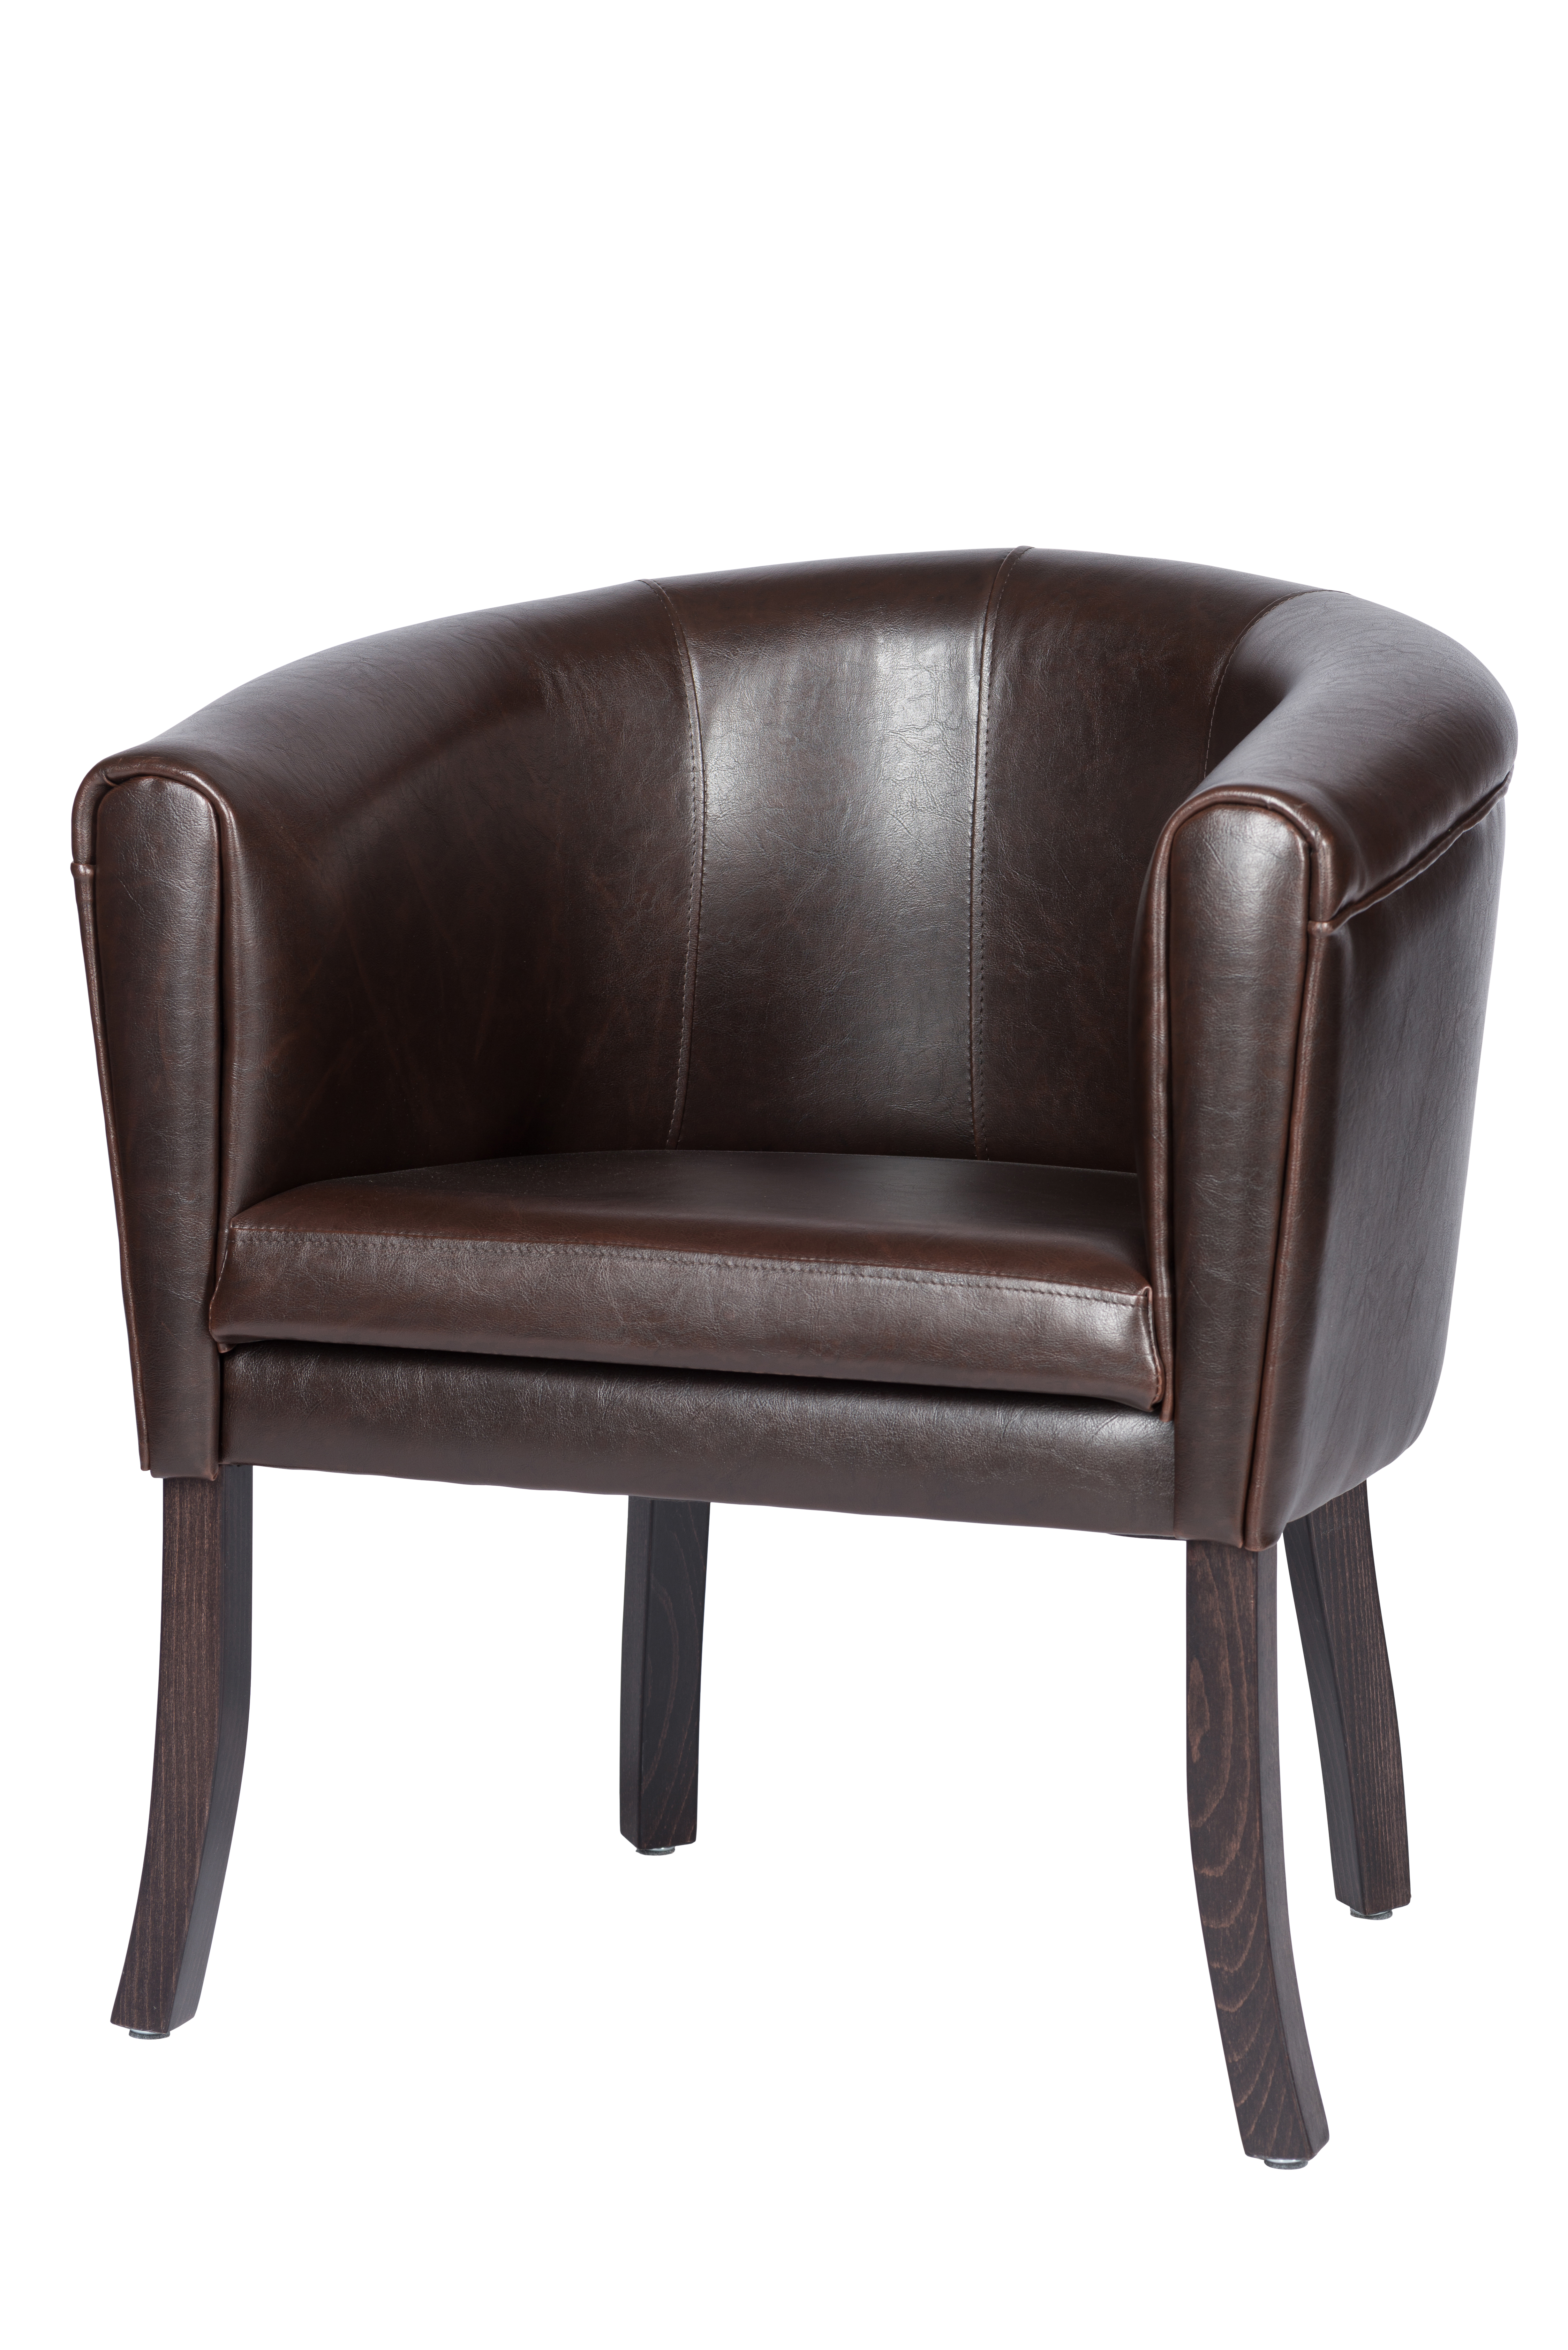 Lord Oxford B08 - Fauteuil Lord